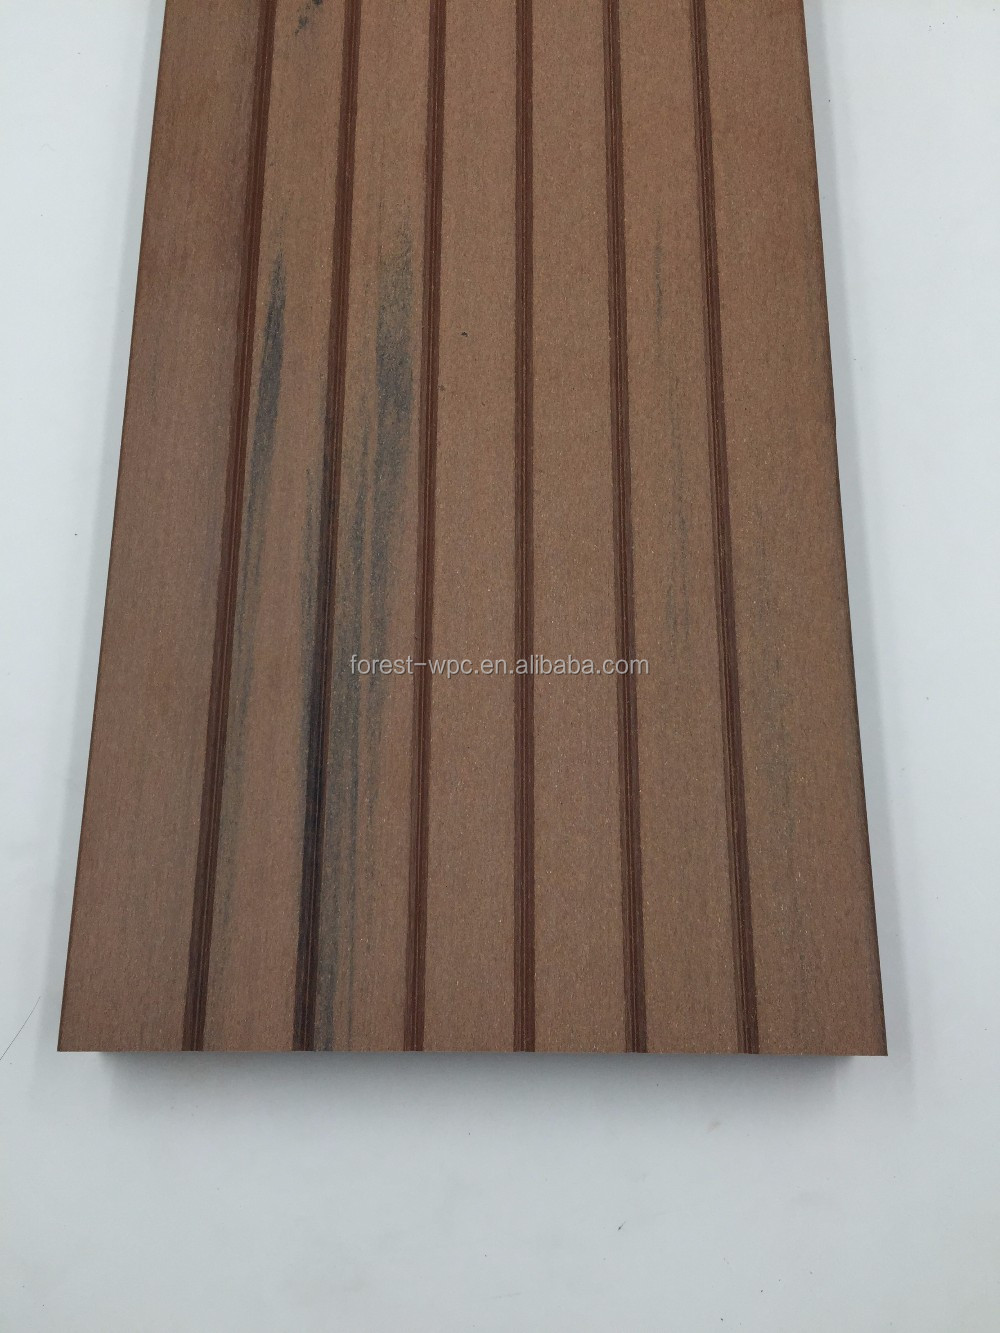 Laminated wood boards rubber flooring cheap